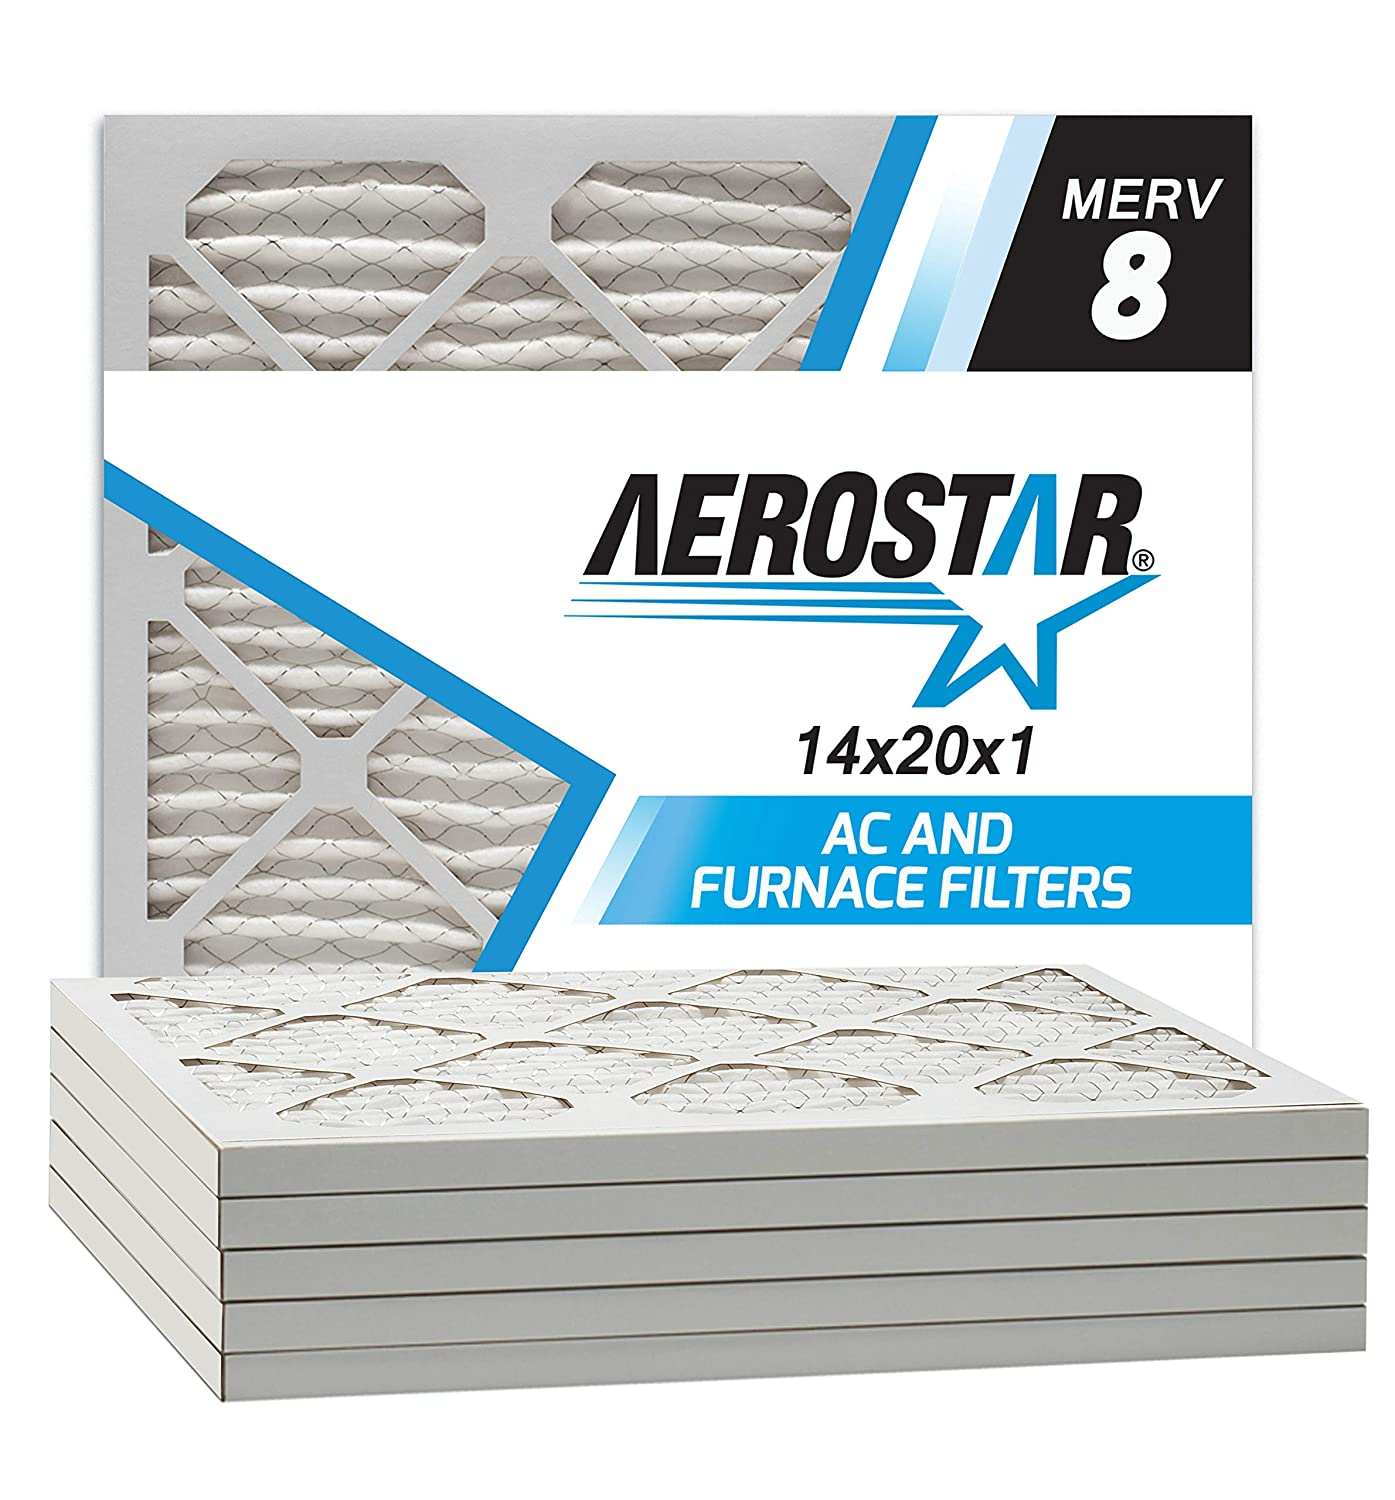 3. Aerostar 14x20x1 MERV 8 Pleated Air Filter, Made in the USA, 6-Pack